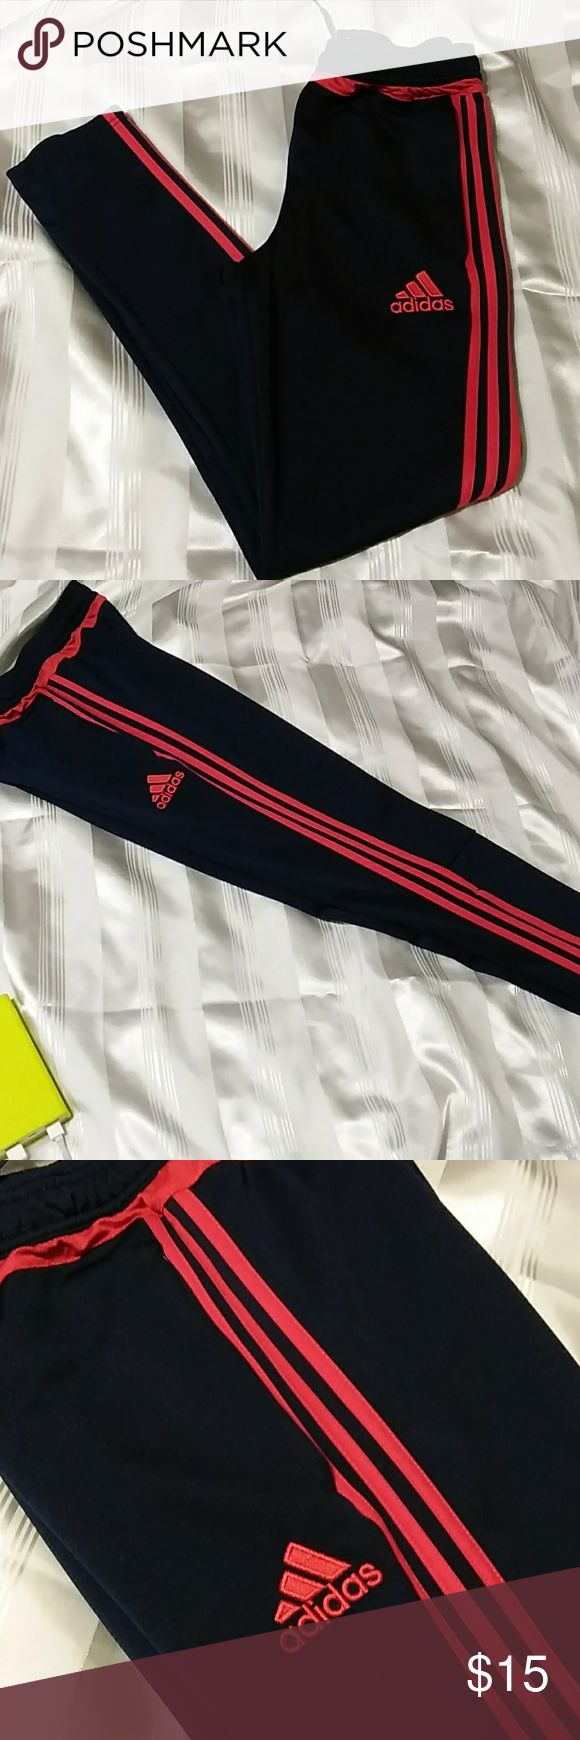 Adidas Clima cool sweatpants  J-31 Midnight Blue color clima cool adidas pants with 3 red stripes. Elastic waistline with adjustable string to make fitting  adjustment. Skinny type but there's a zipper to make the hem wider. See the last picture. Great condition no stains  or rips.  Measurements laying flat  Waistline :13 inches Length:38 inches Adidas Bottoms Sweatpants & Joggers